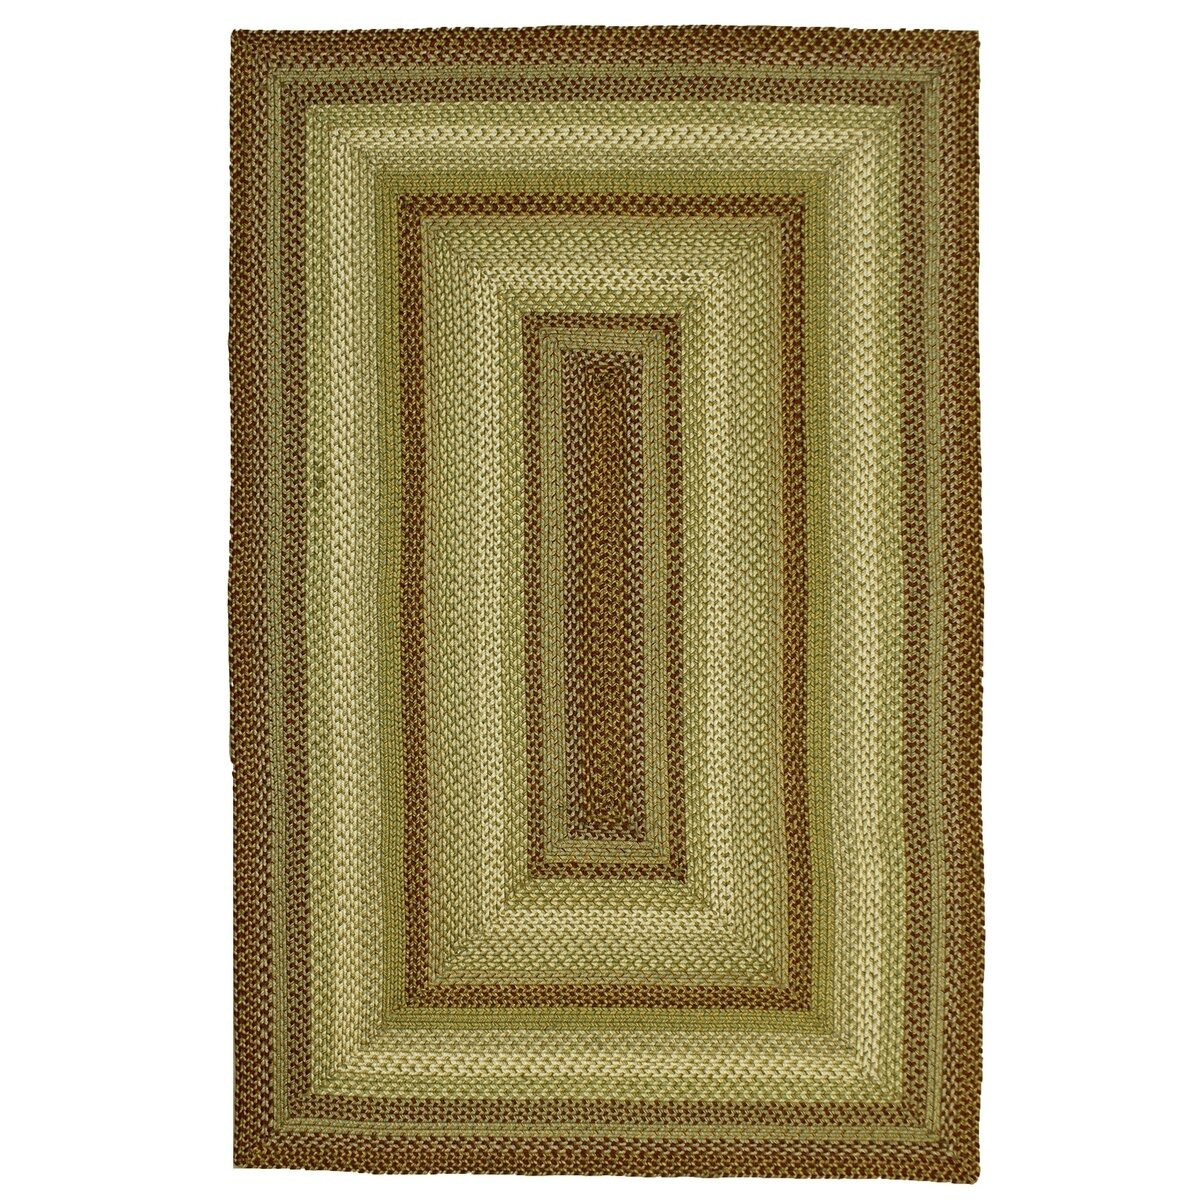 Homespice Decor Winter Wheat Green Indoor Outdoor Area Rug